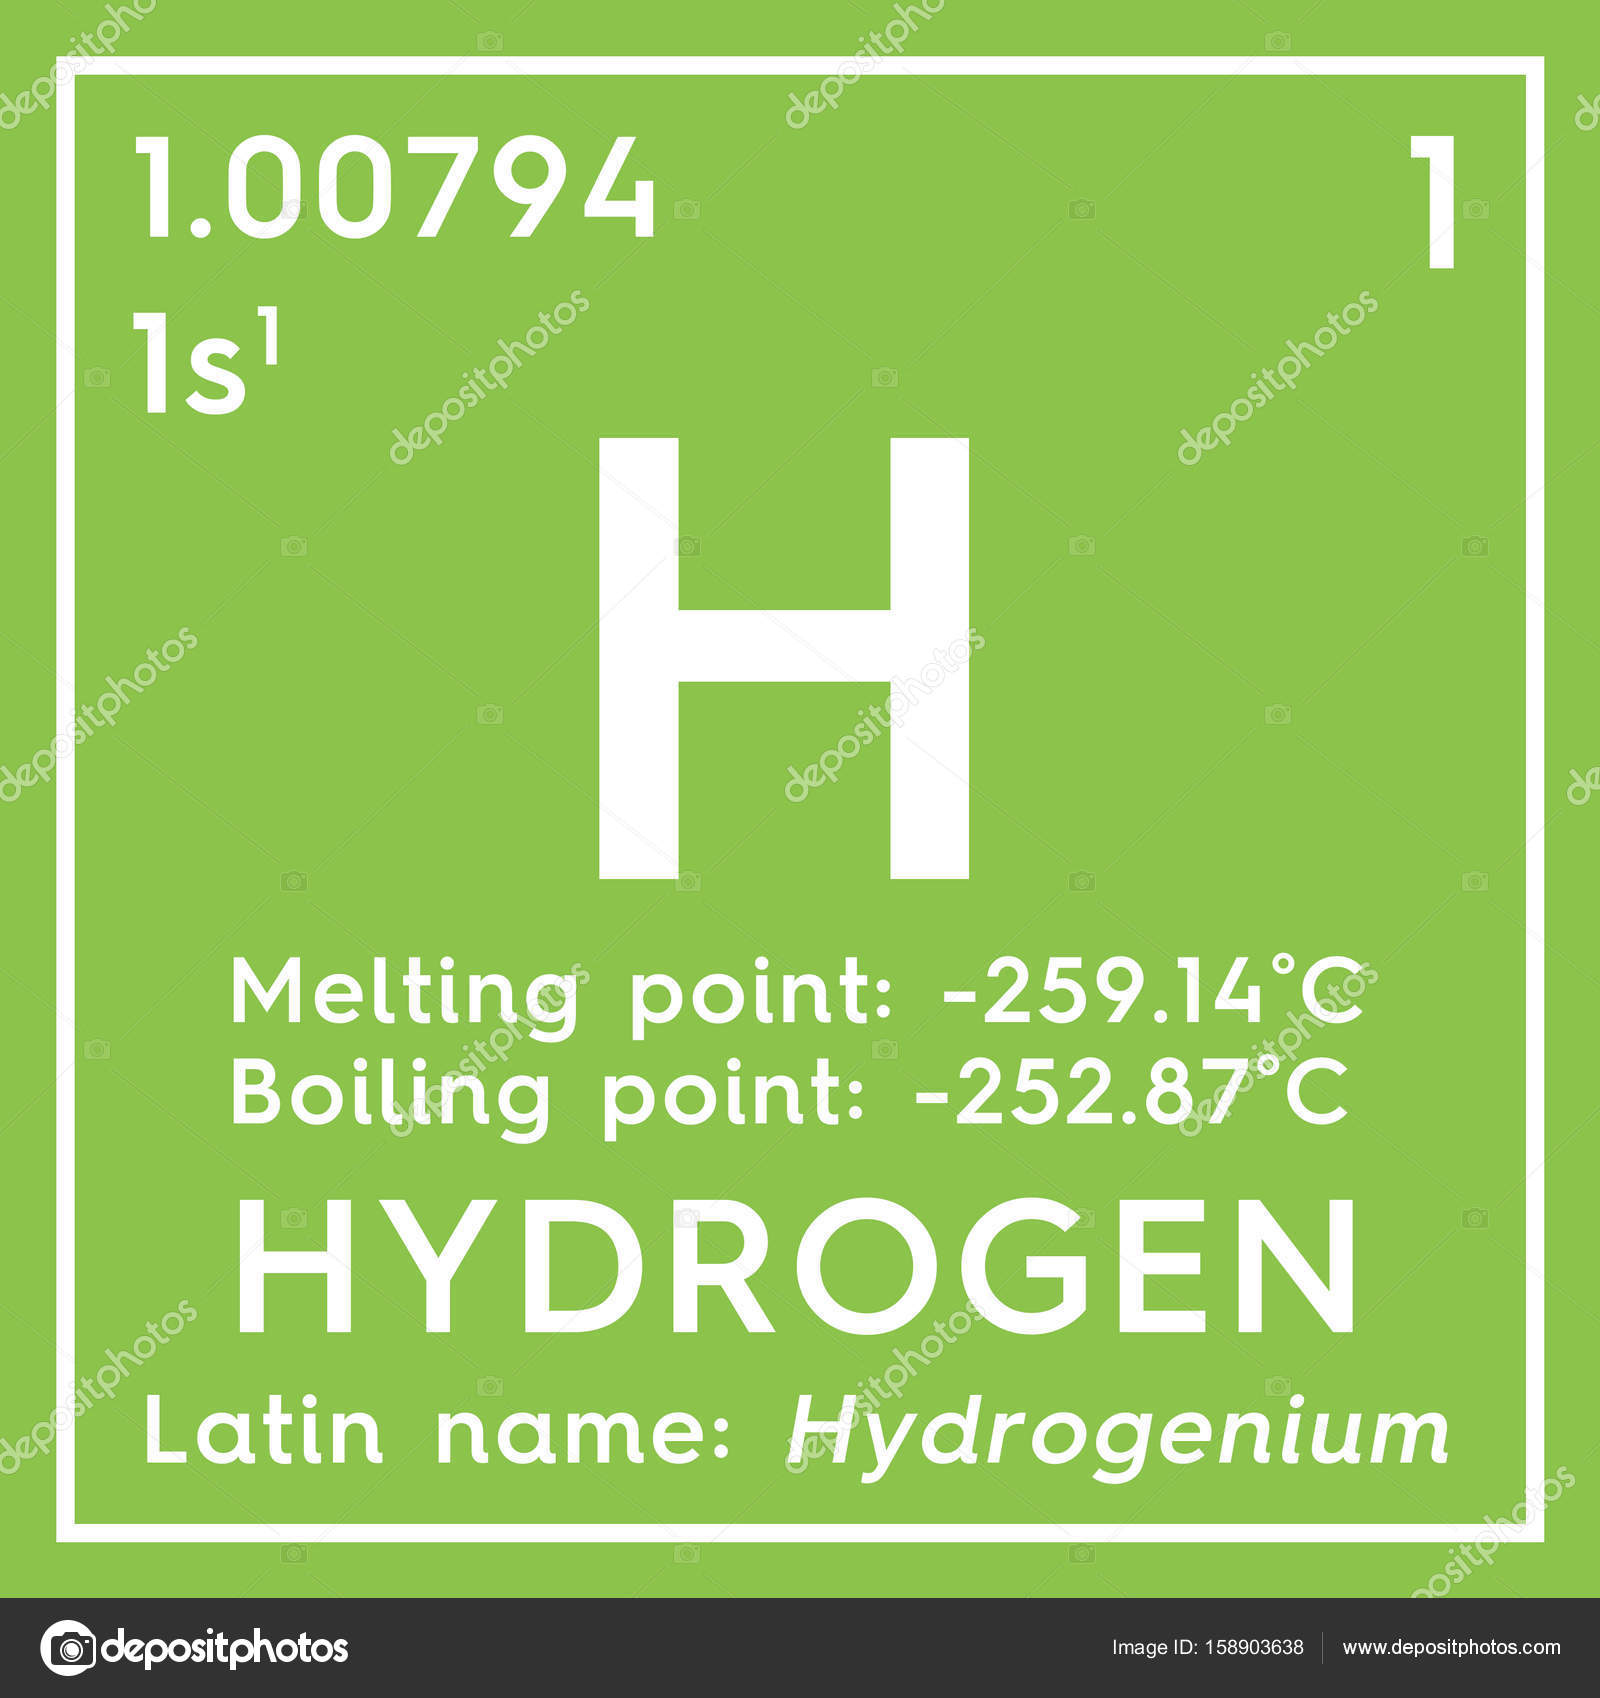 Hydrogen in square cube creative concept stock photo sanches812 chemical element of mendeleevs periodic table hydrogen in square cube creative concept photo by sanches812 urtaz Gallery